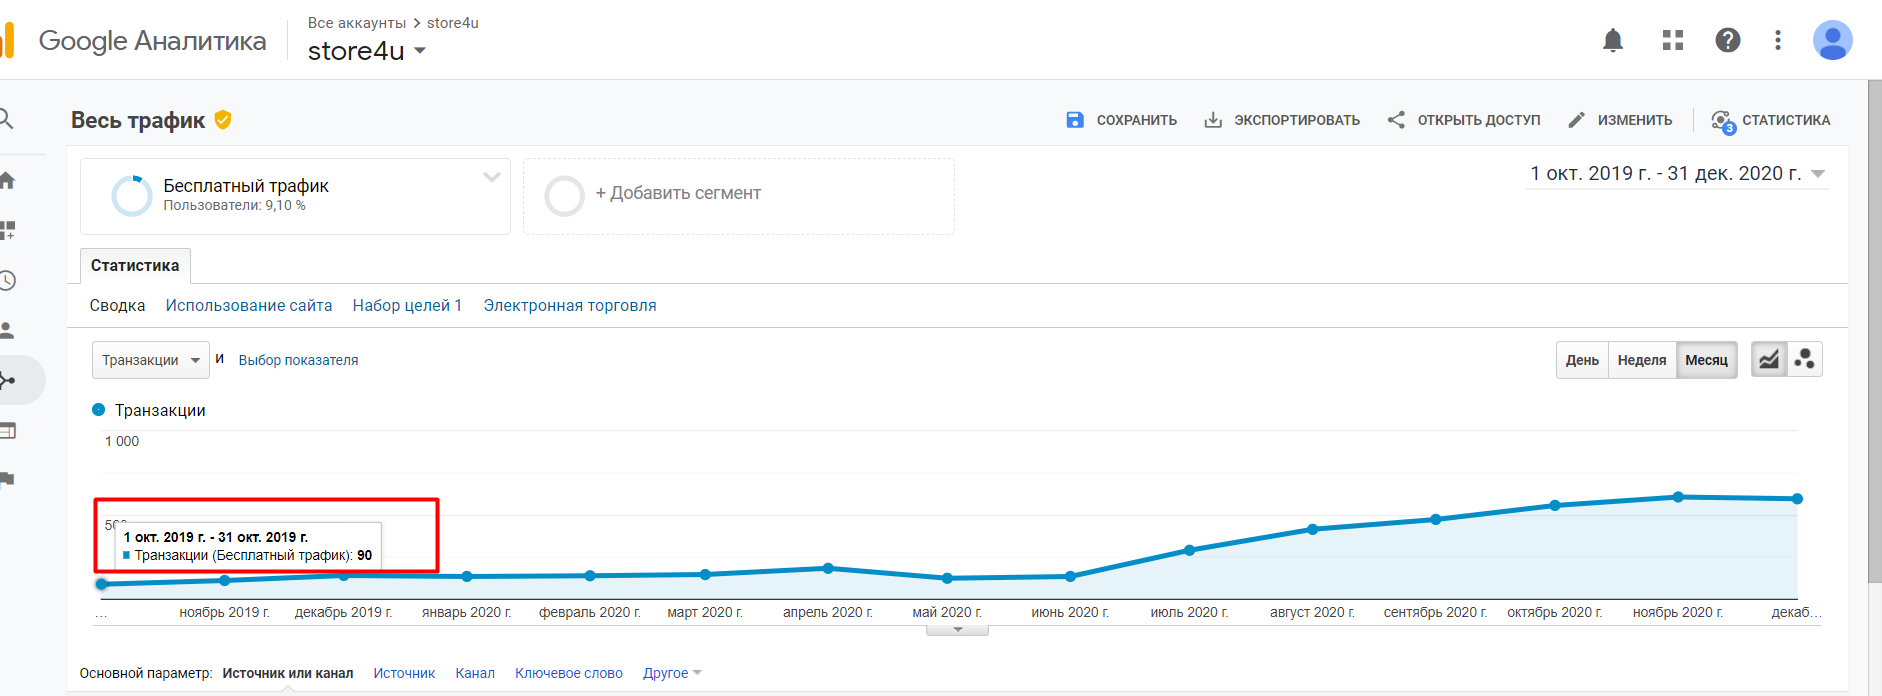 Sales after suspension of SEO